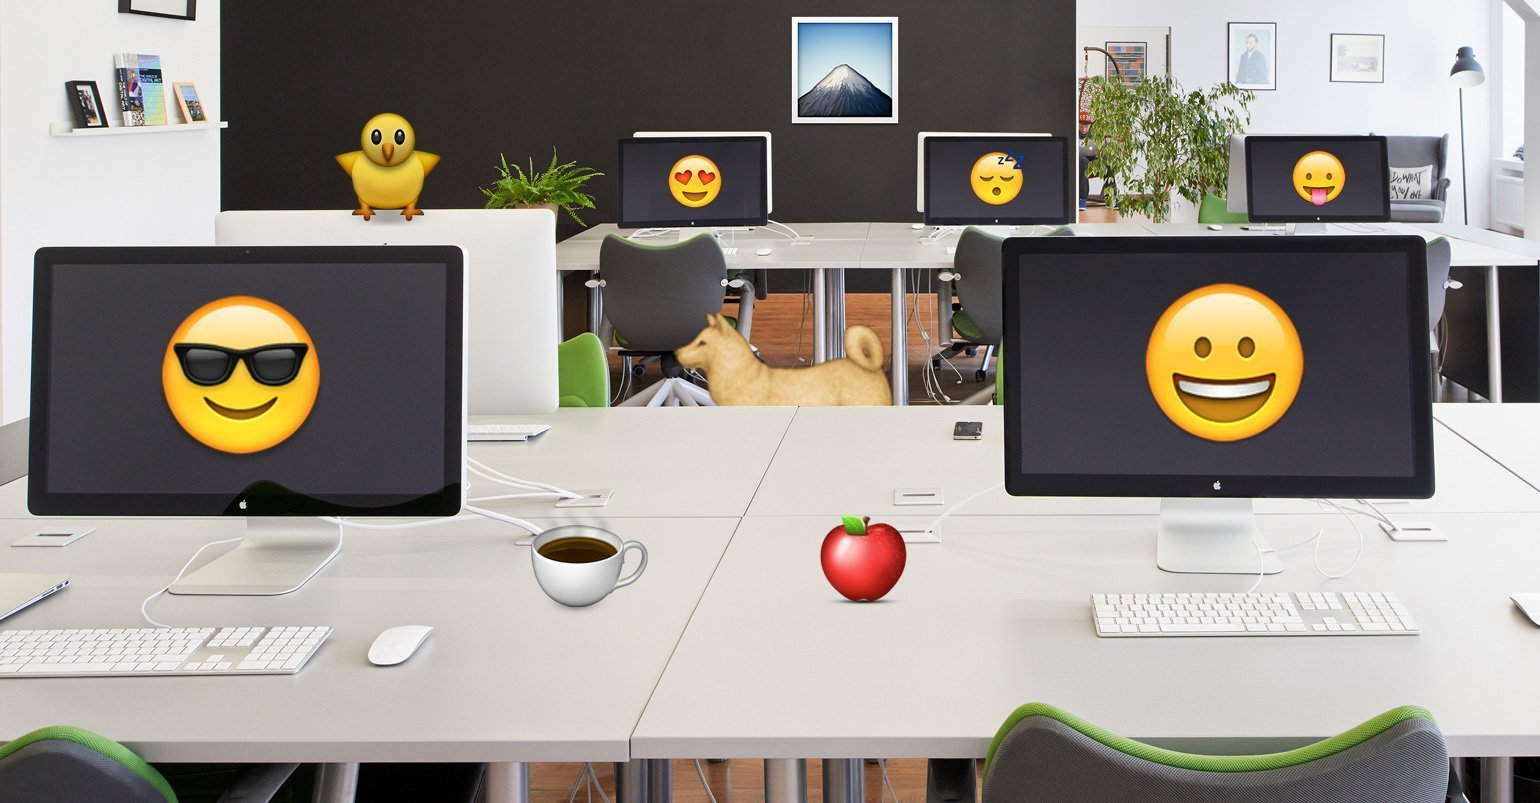 The complete guide to using email emojis in subject lines